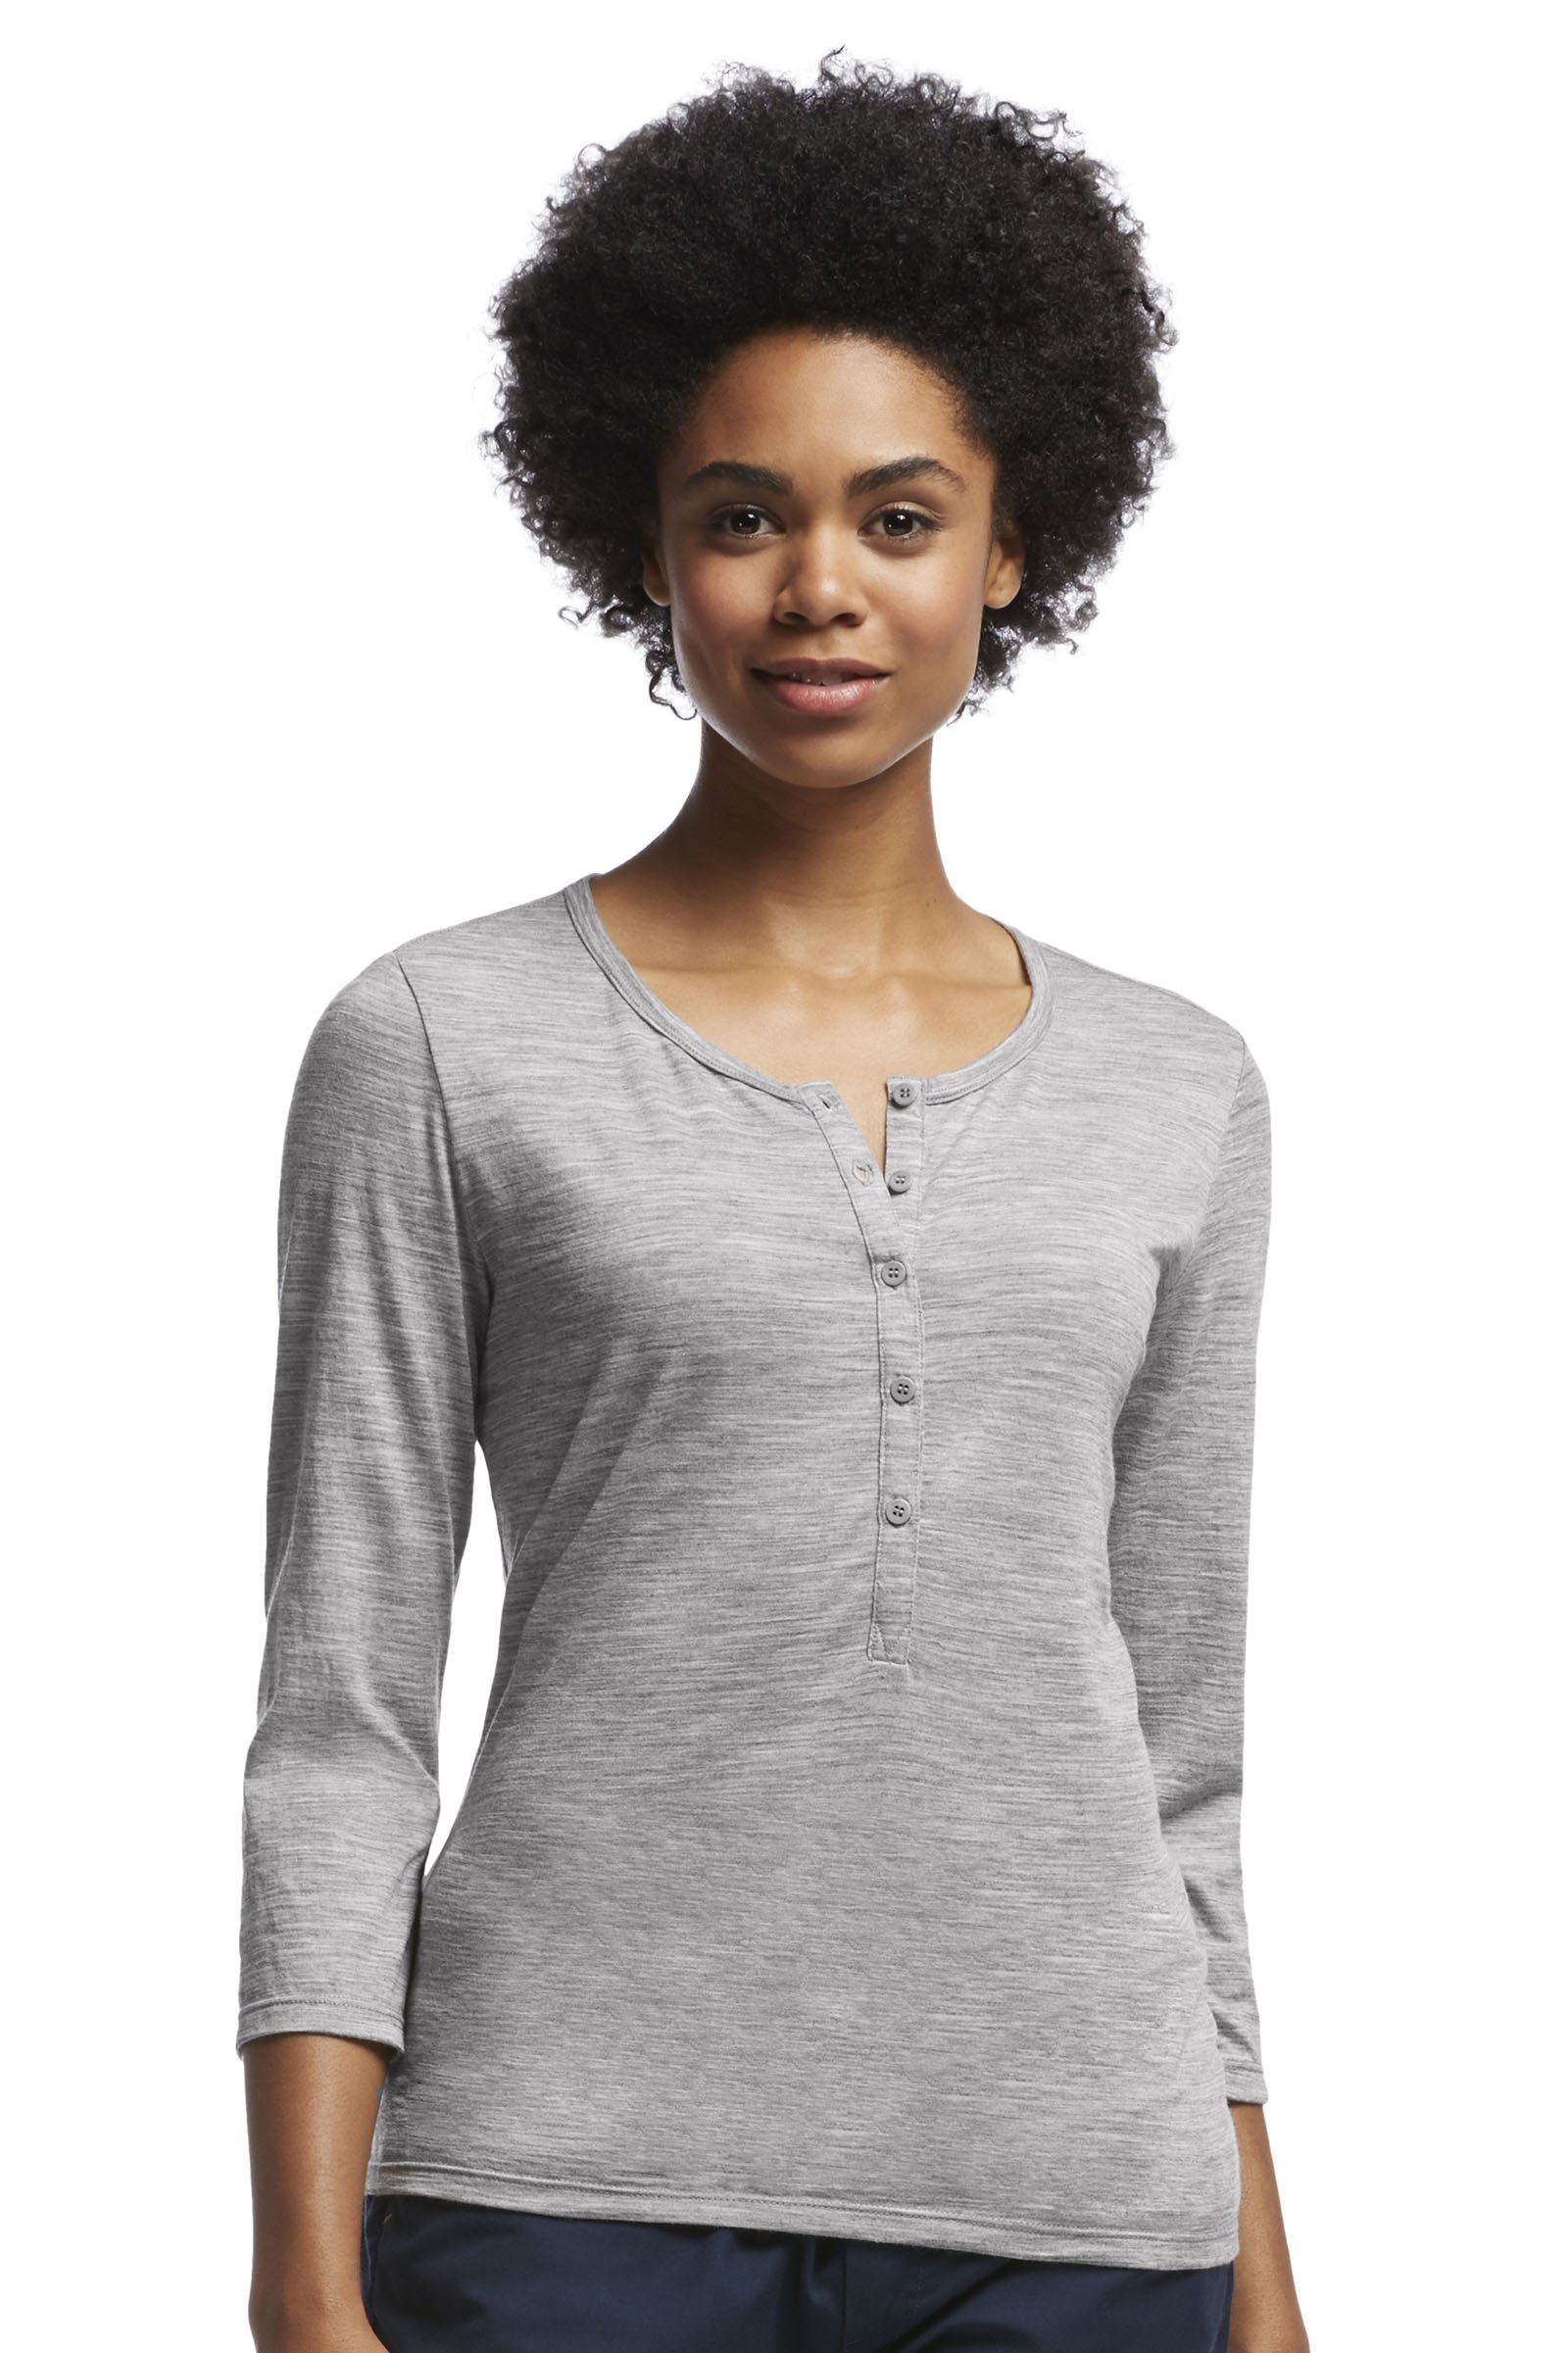 Icebreaker Merino Women's Tech Lite 3/4 Sleeve Henley T-Shirt, Metro Heather, X-Large by Icebreaker Merino